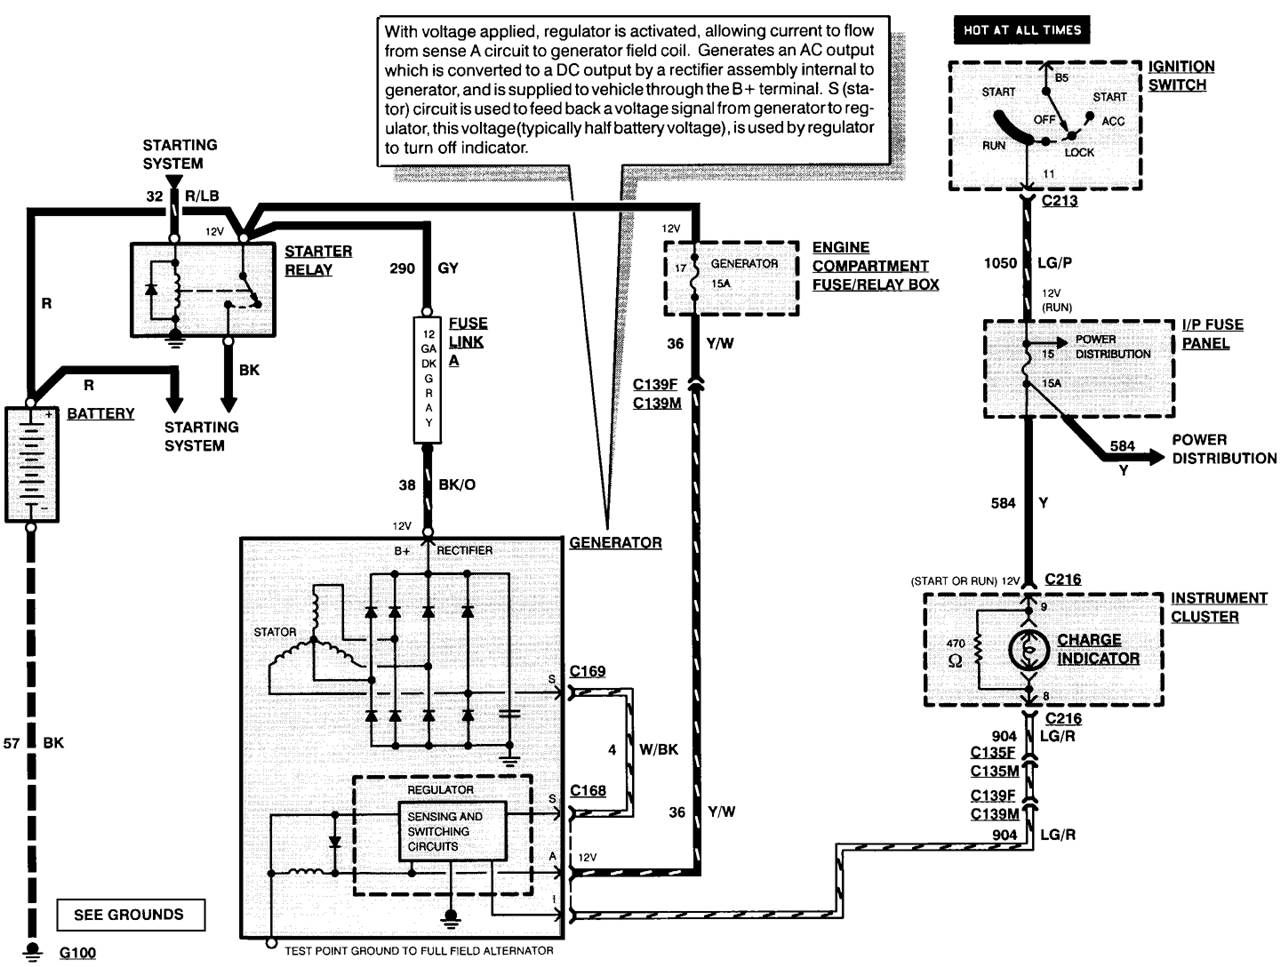 [SCHEMATICS_48YU]  1985 Bmw Alternator Wiring - Citroen Dispatch Heater Wiring Diagram for Wiring  Diagram Schematics | 1966 Ford Alternator Diagram Wiring Schematic |  | Wiring Diagram Schematics